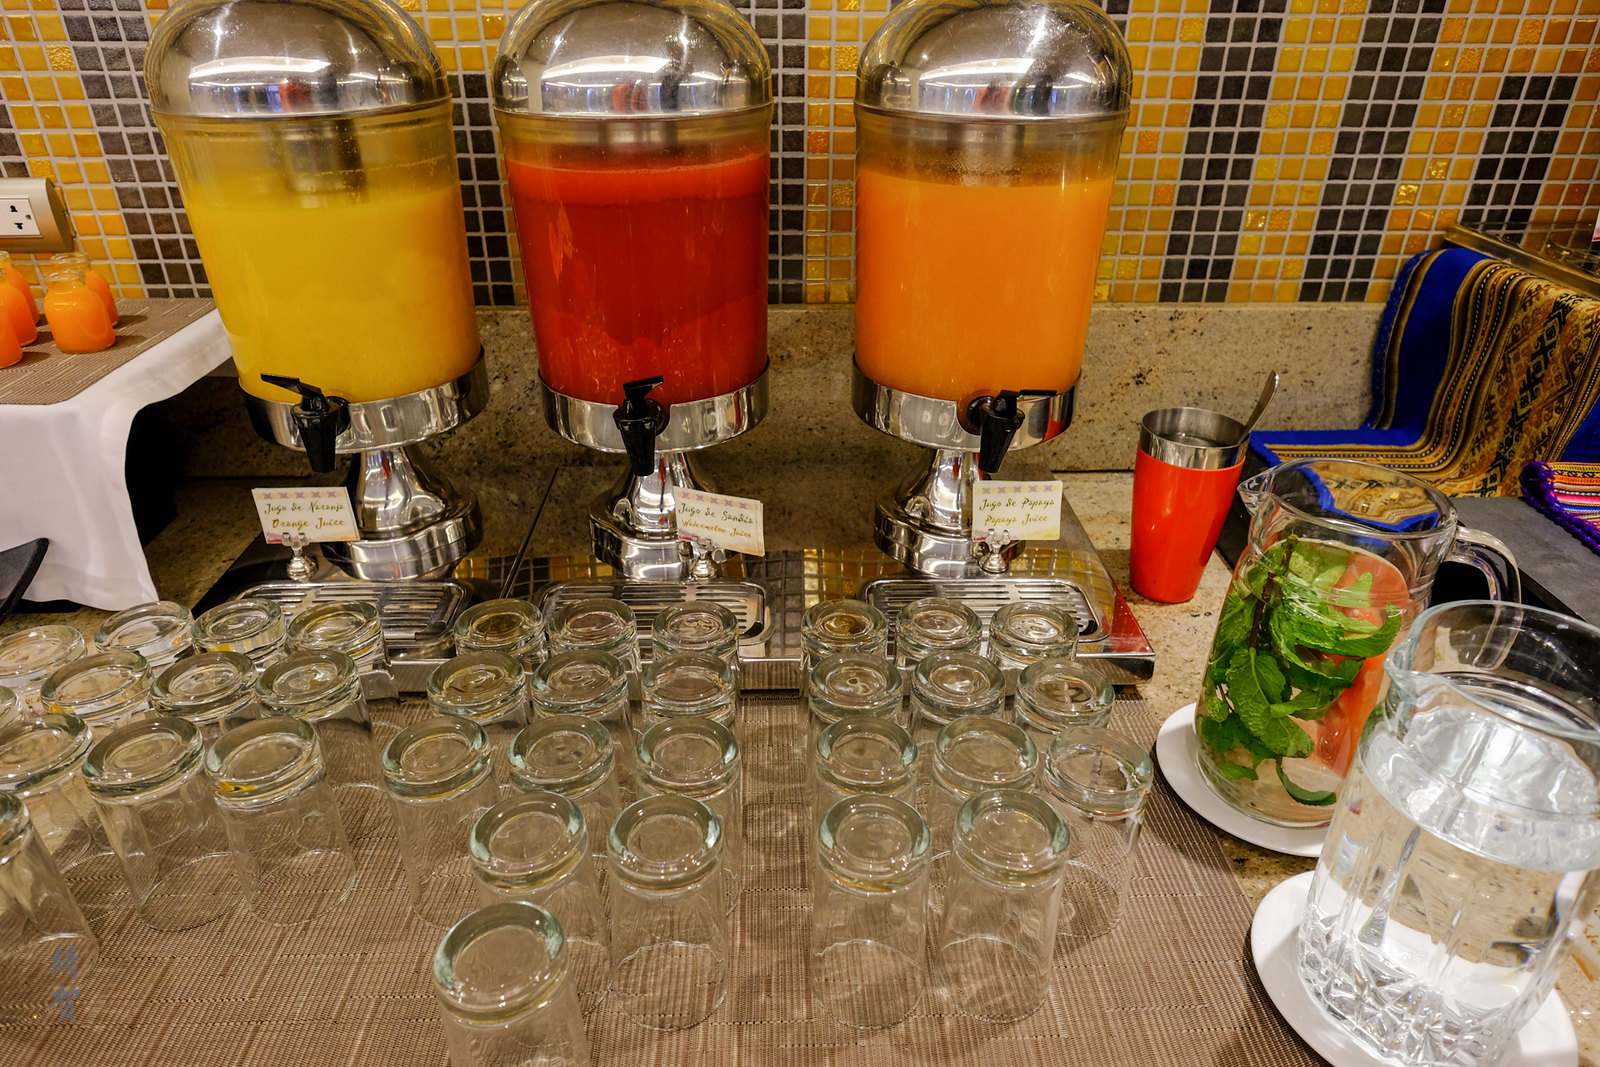 Juice and infused water